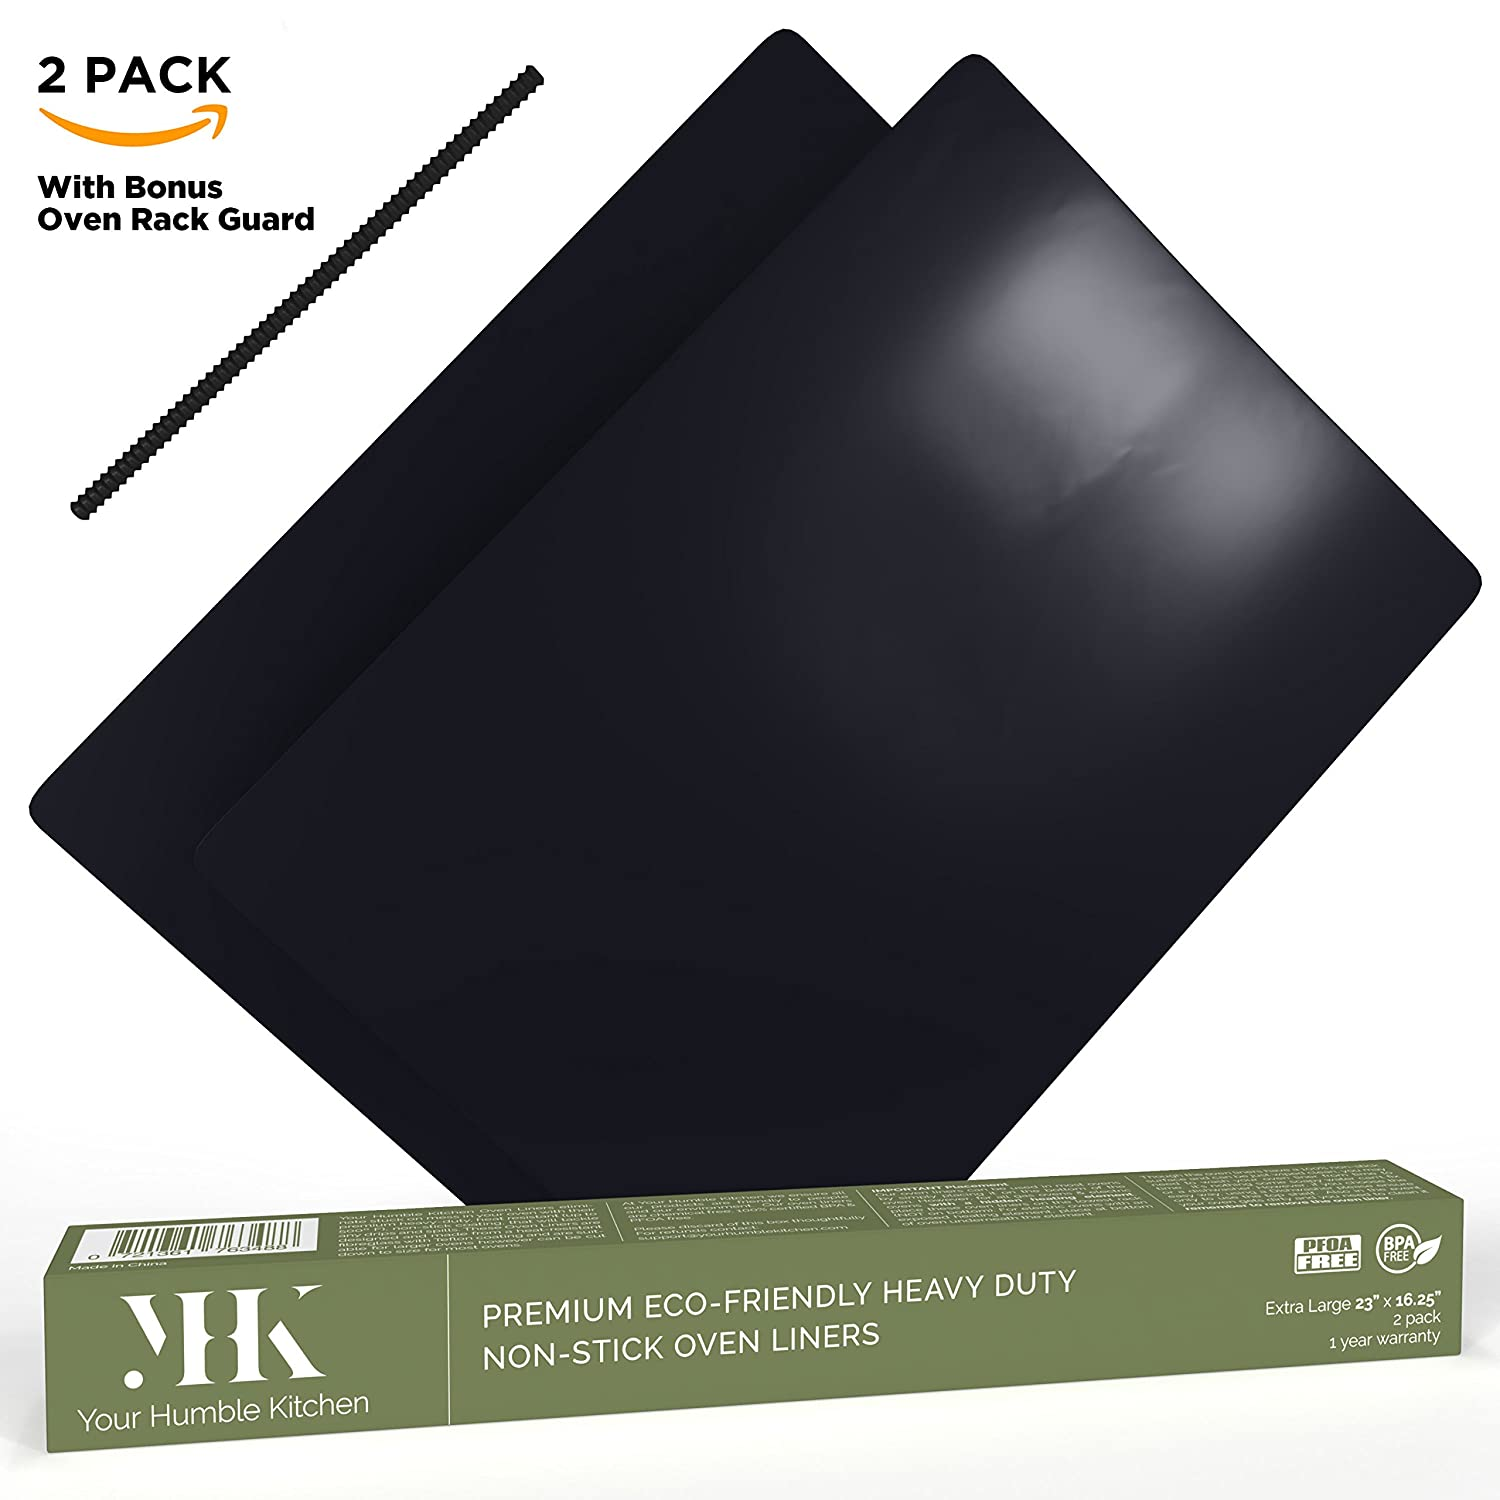 YHK 2 Pack Large Non-Stick Oven Liners - Premium Heavy Duty Liner for the bottom of Convection, Electric, Gas, Toaster & Microwave Ovens - Certified Protector BPA & PFOA Free